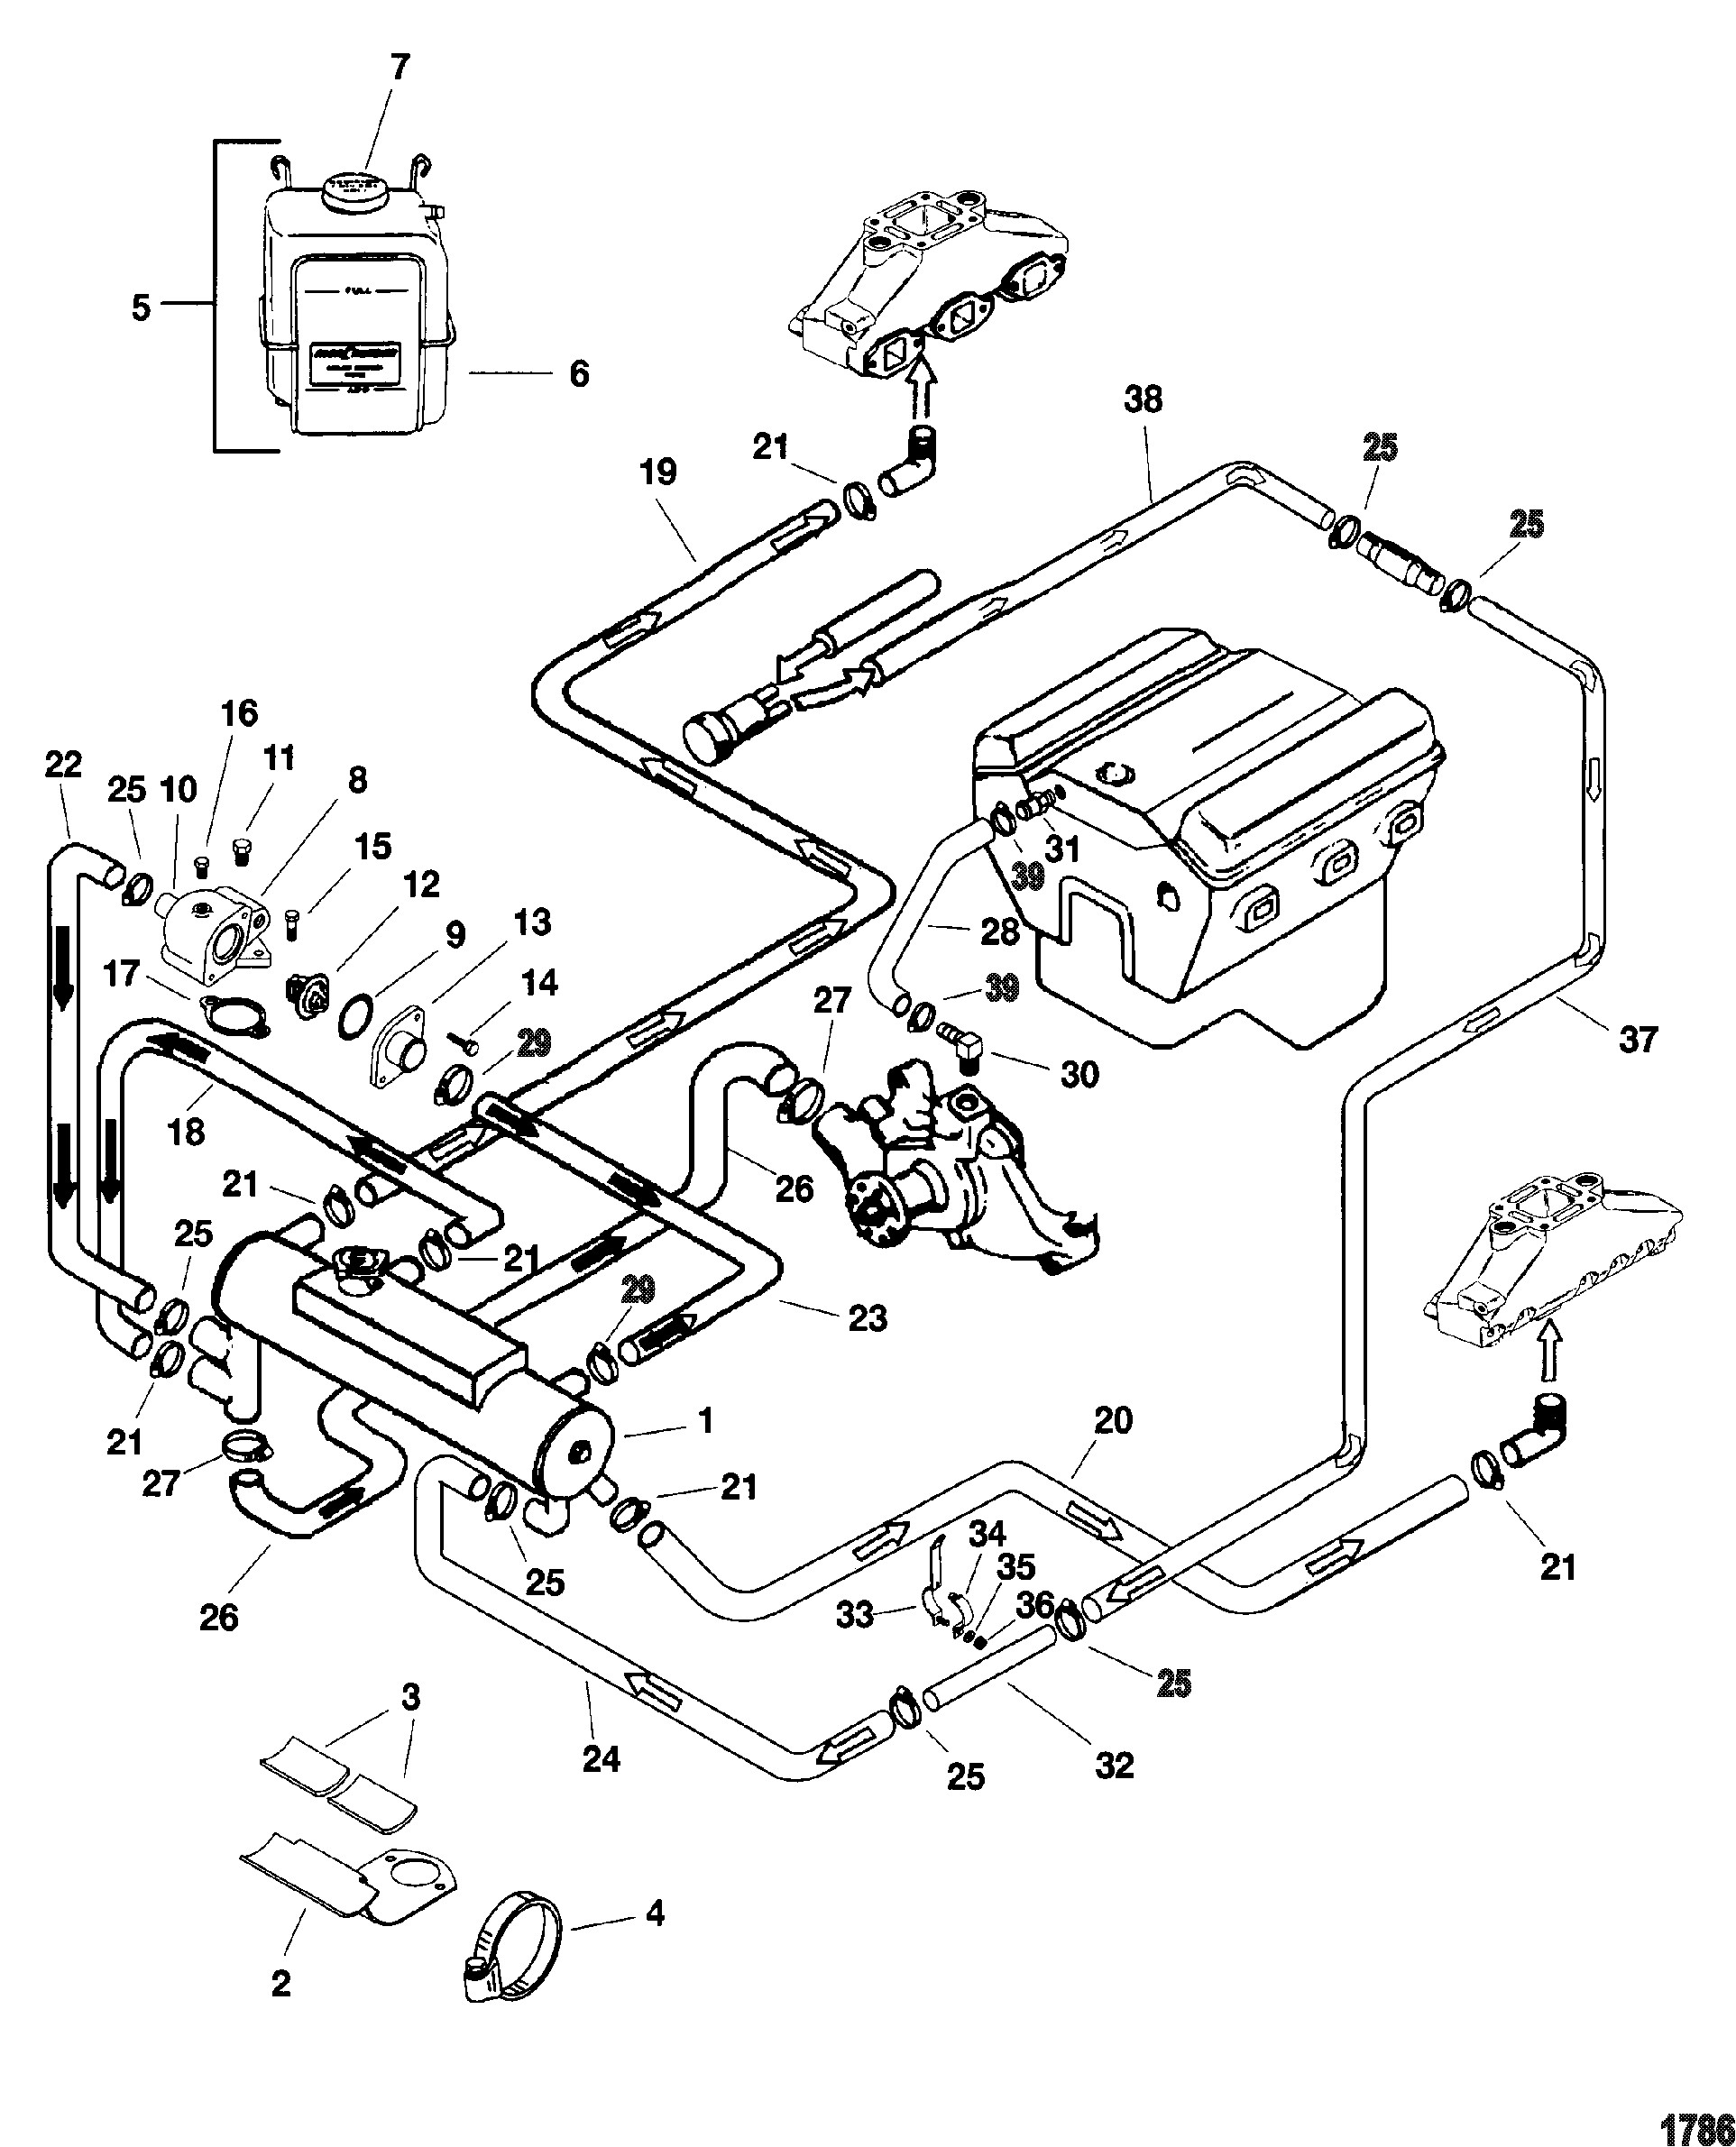 hight resolution of 1993 bmw 325i engine diagram simple wiring diagram bmw 325i fuse panel 1990 bmw 325i fuse diagram